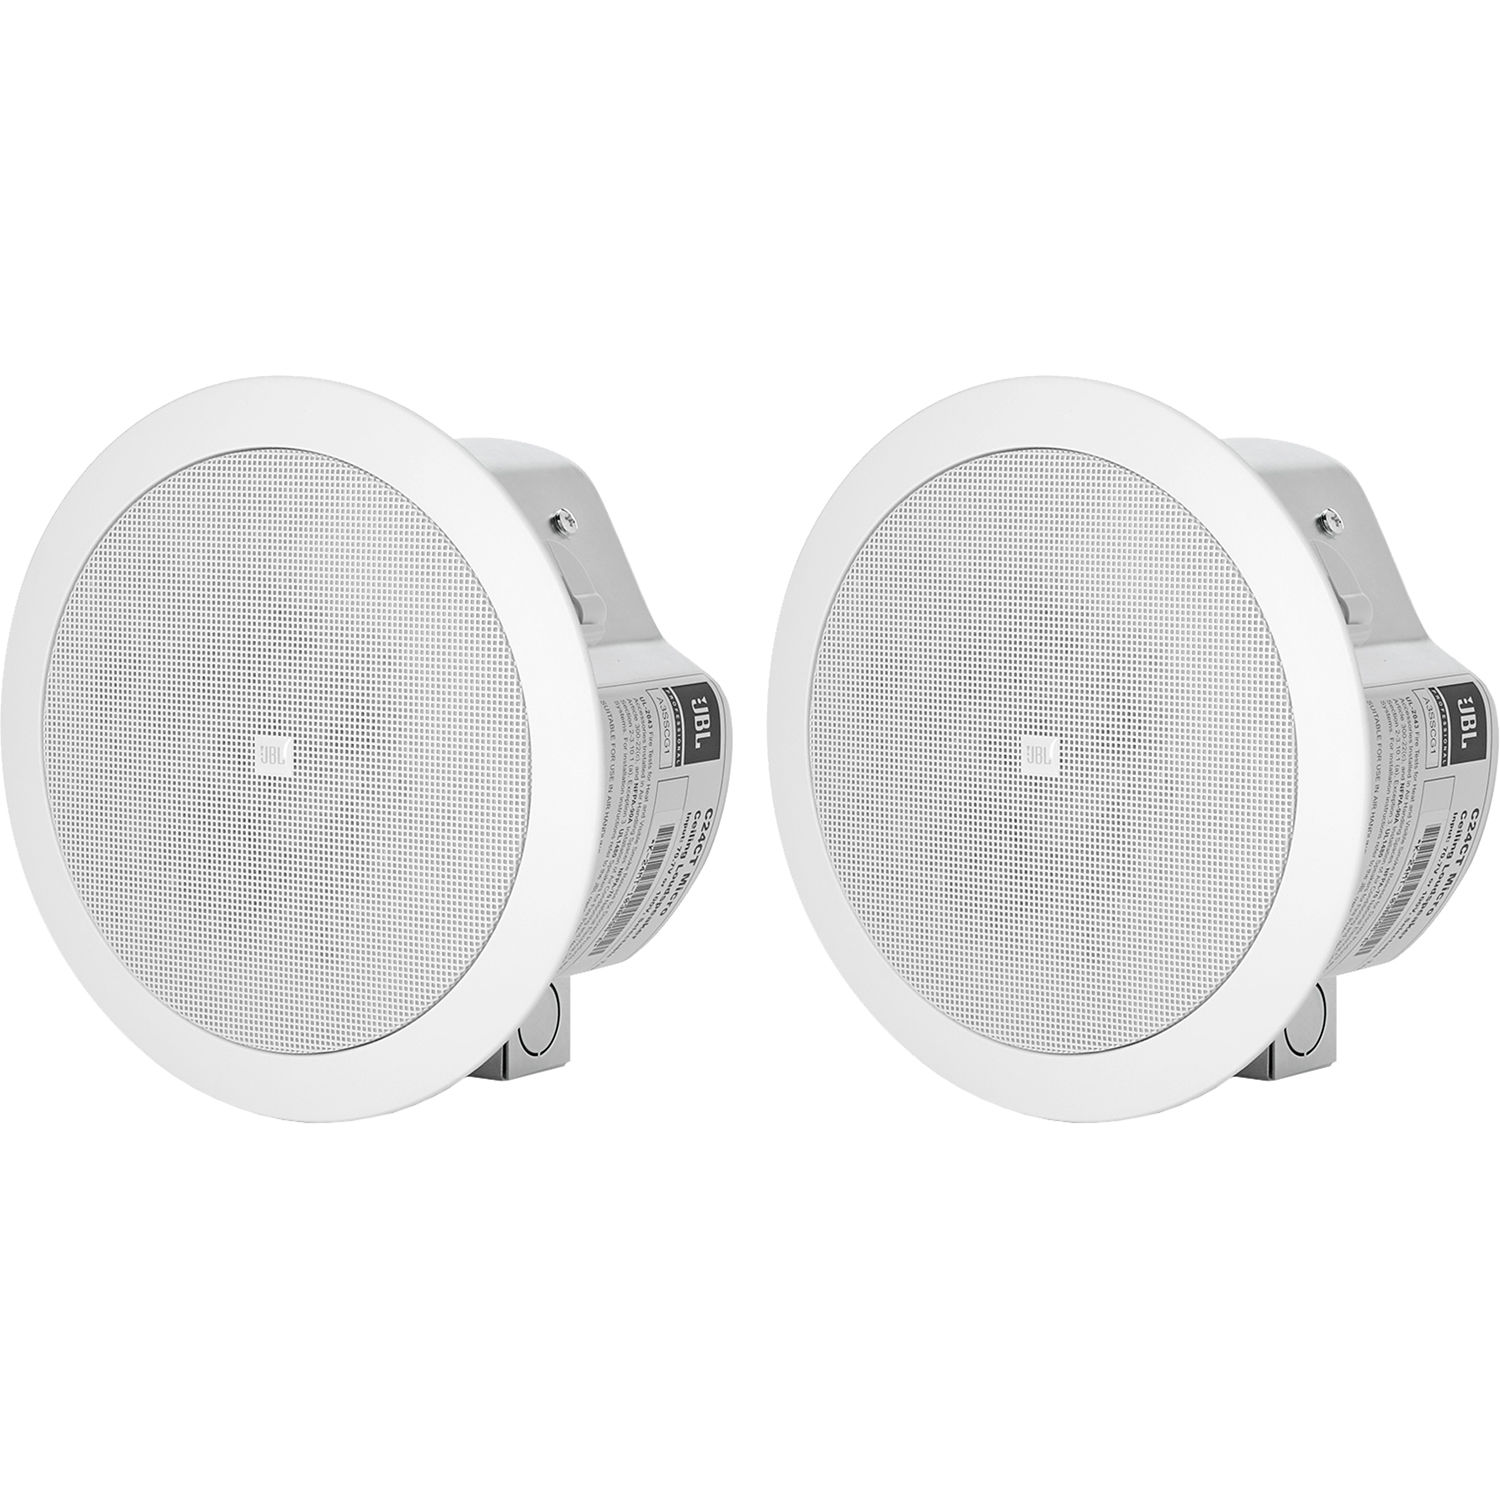 station speakers speaker incident fire products equipment alerting ceiling jbl system firehouse